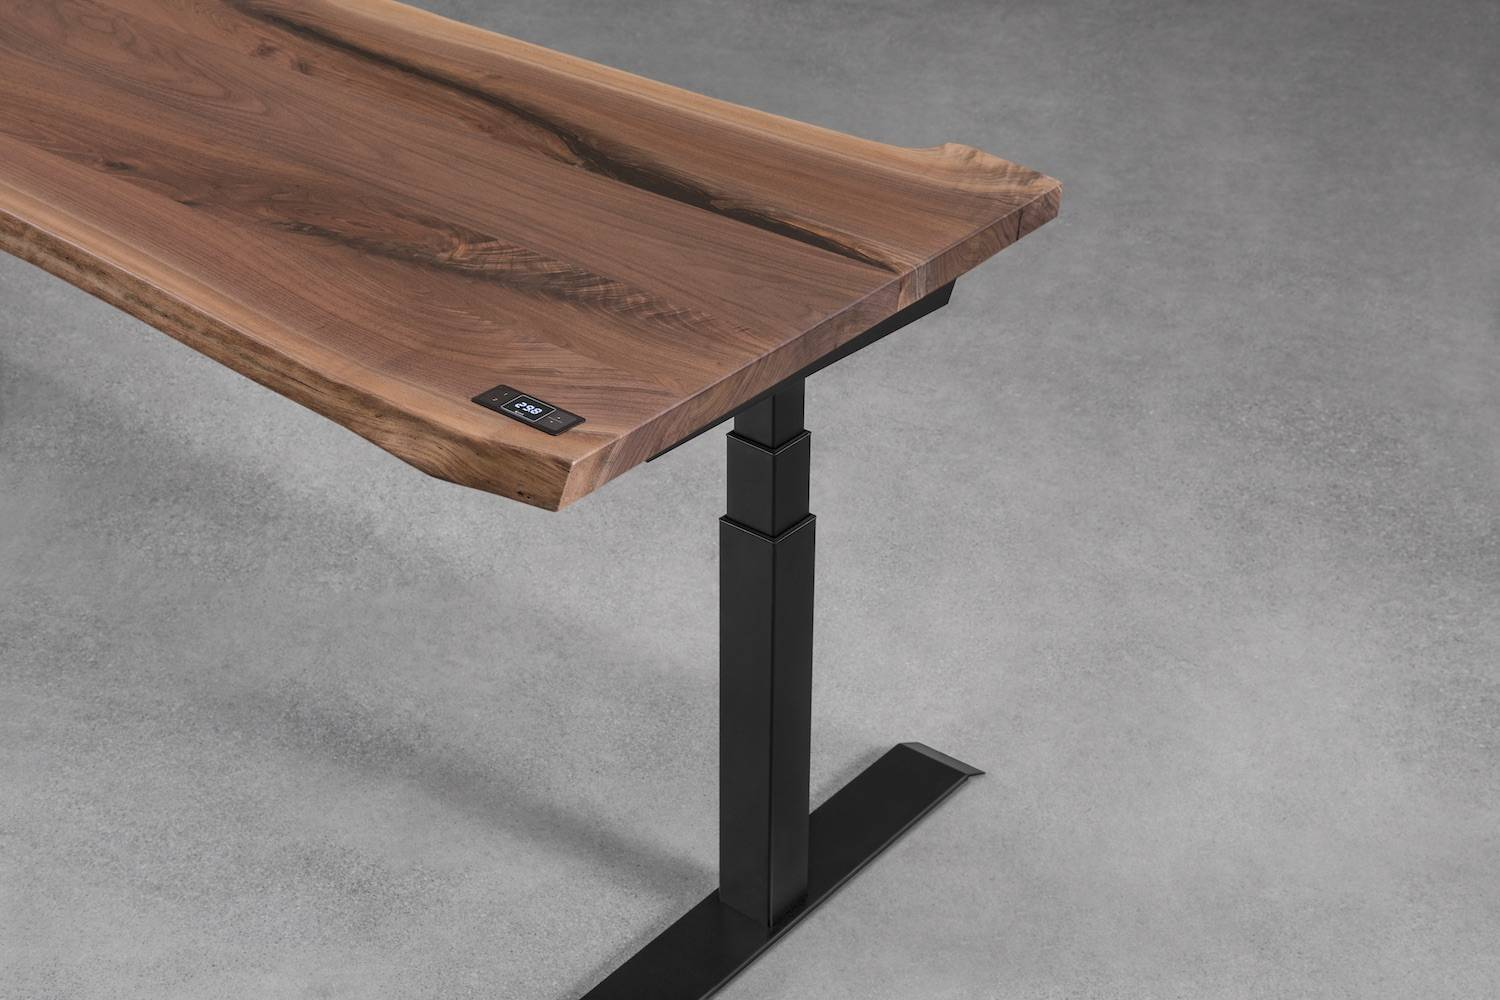 Walnut live edge sit-stand desk - ergonofis